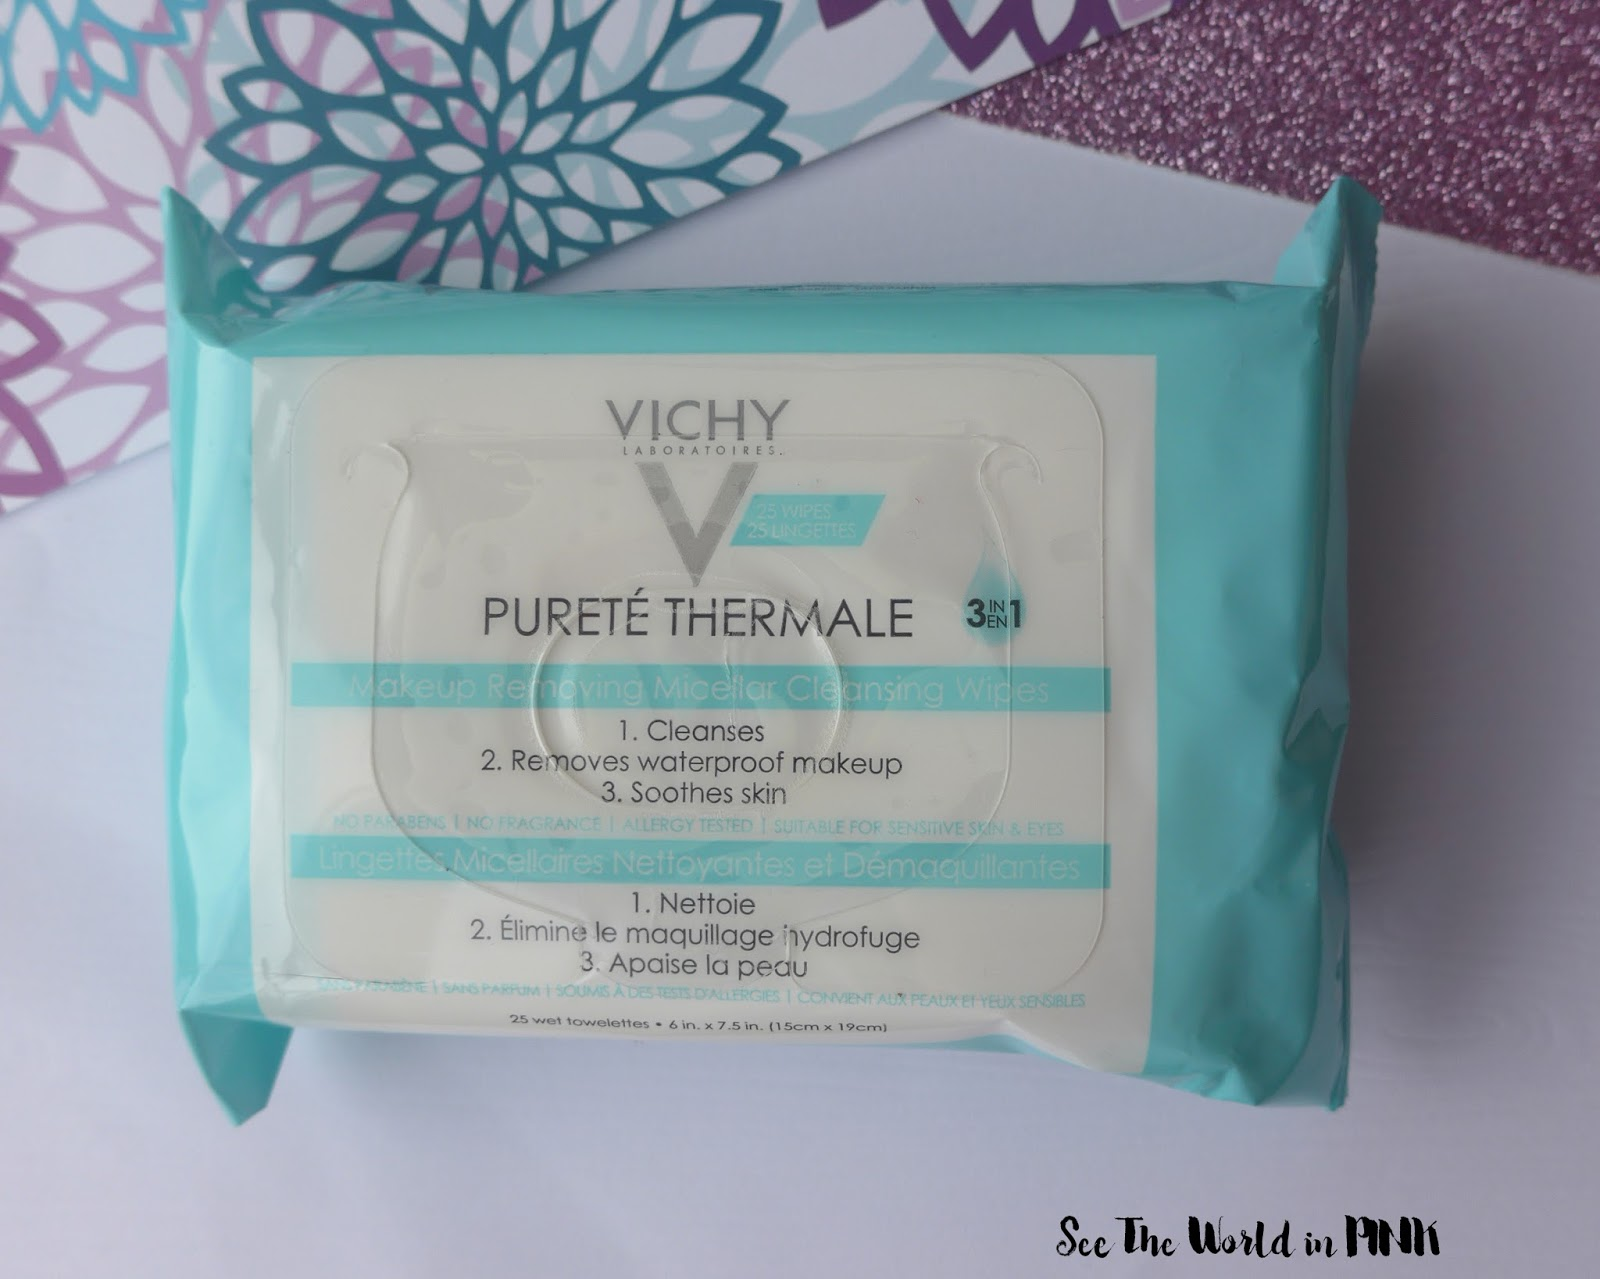 Skincare Sunday - Vichy Makeup Removing Micellar Cleansing Wipes Review